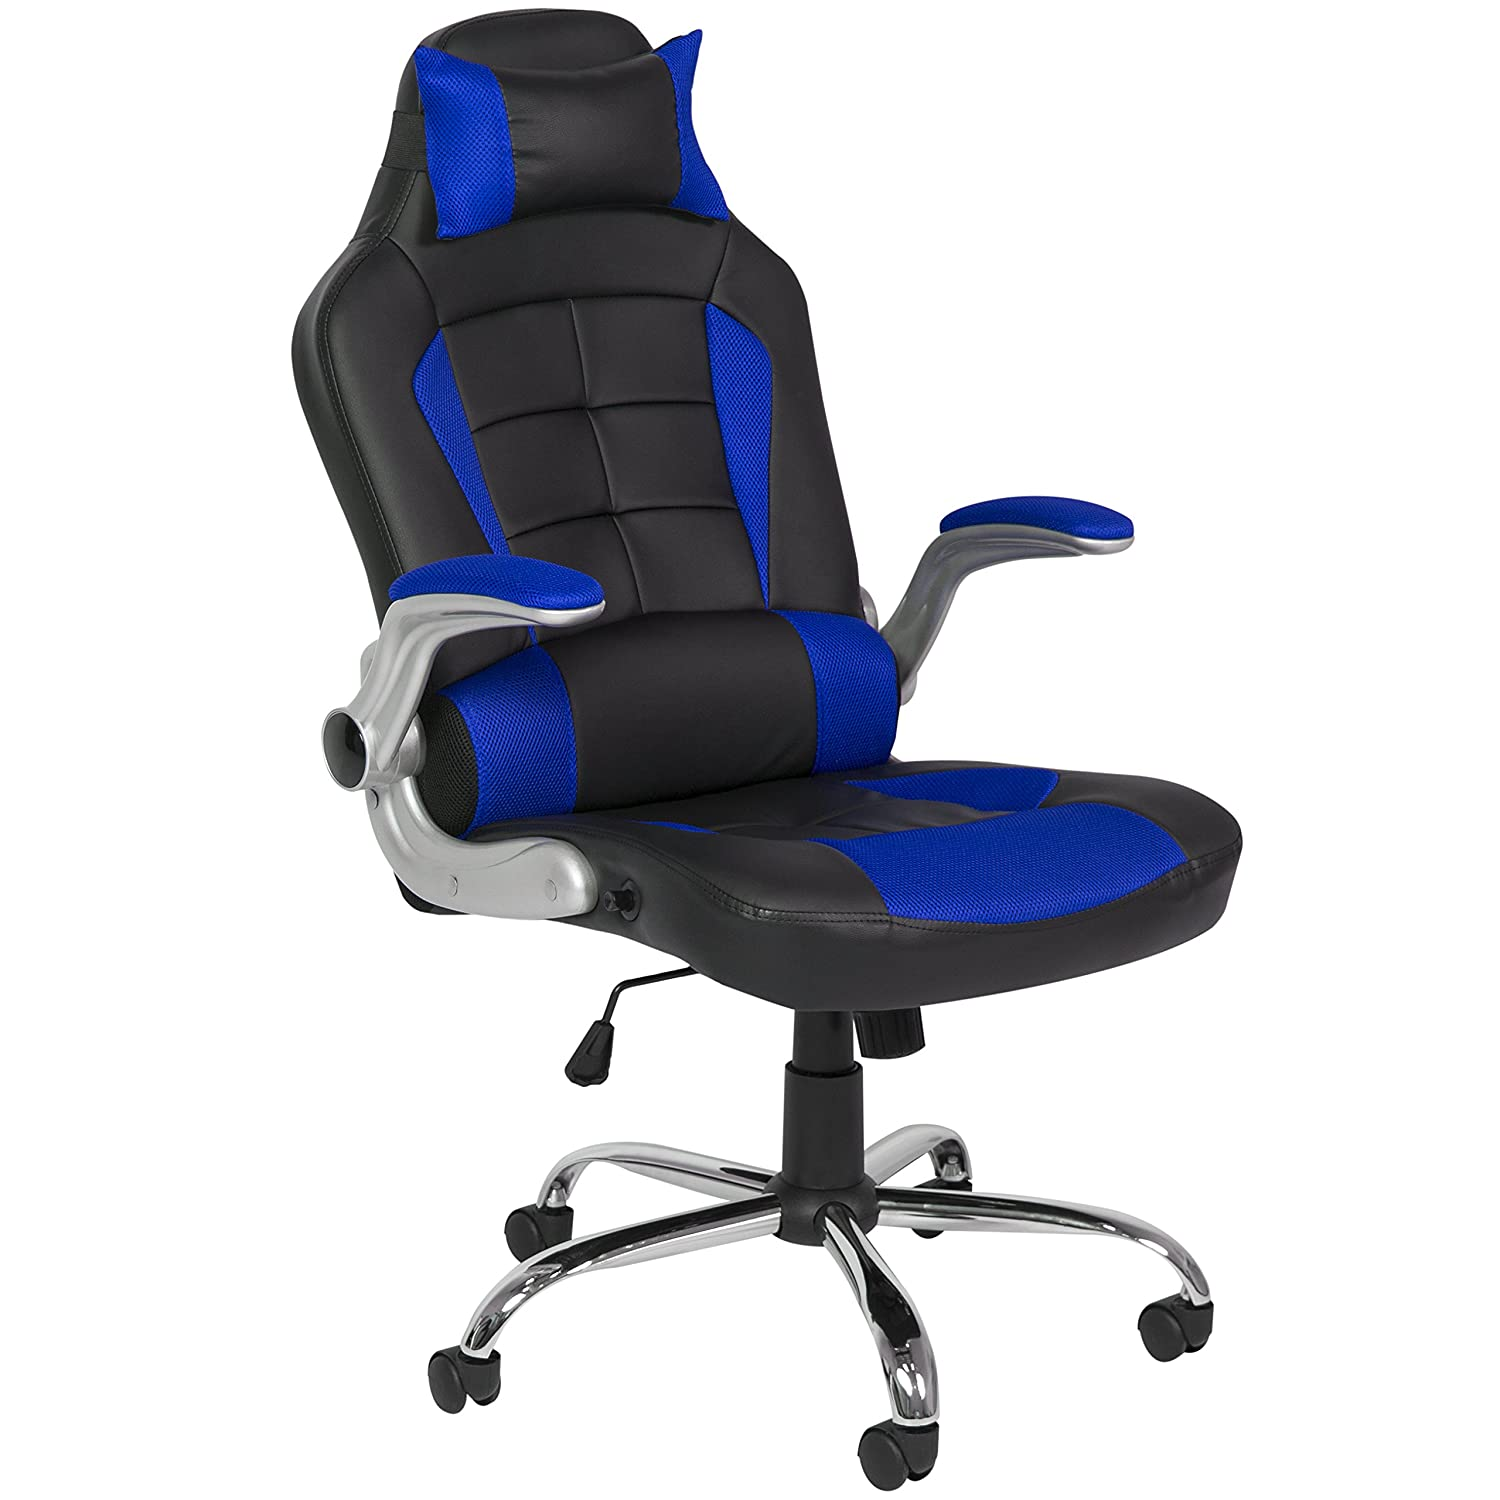 Best Choice Products BCP Deluxe Ergonomic Racing Style PU Leather Office Chair Swivel High Back